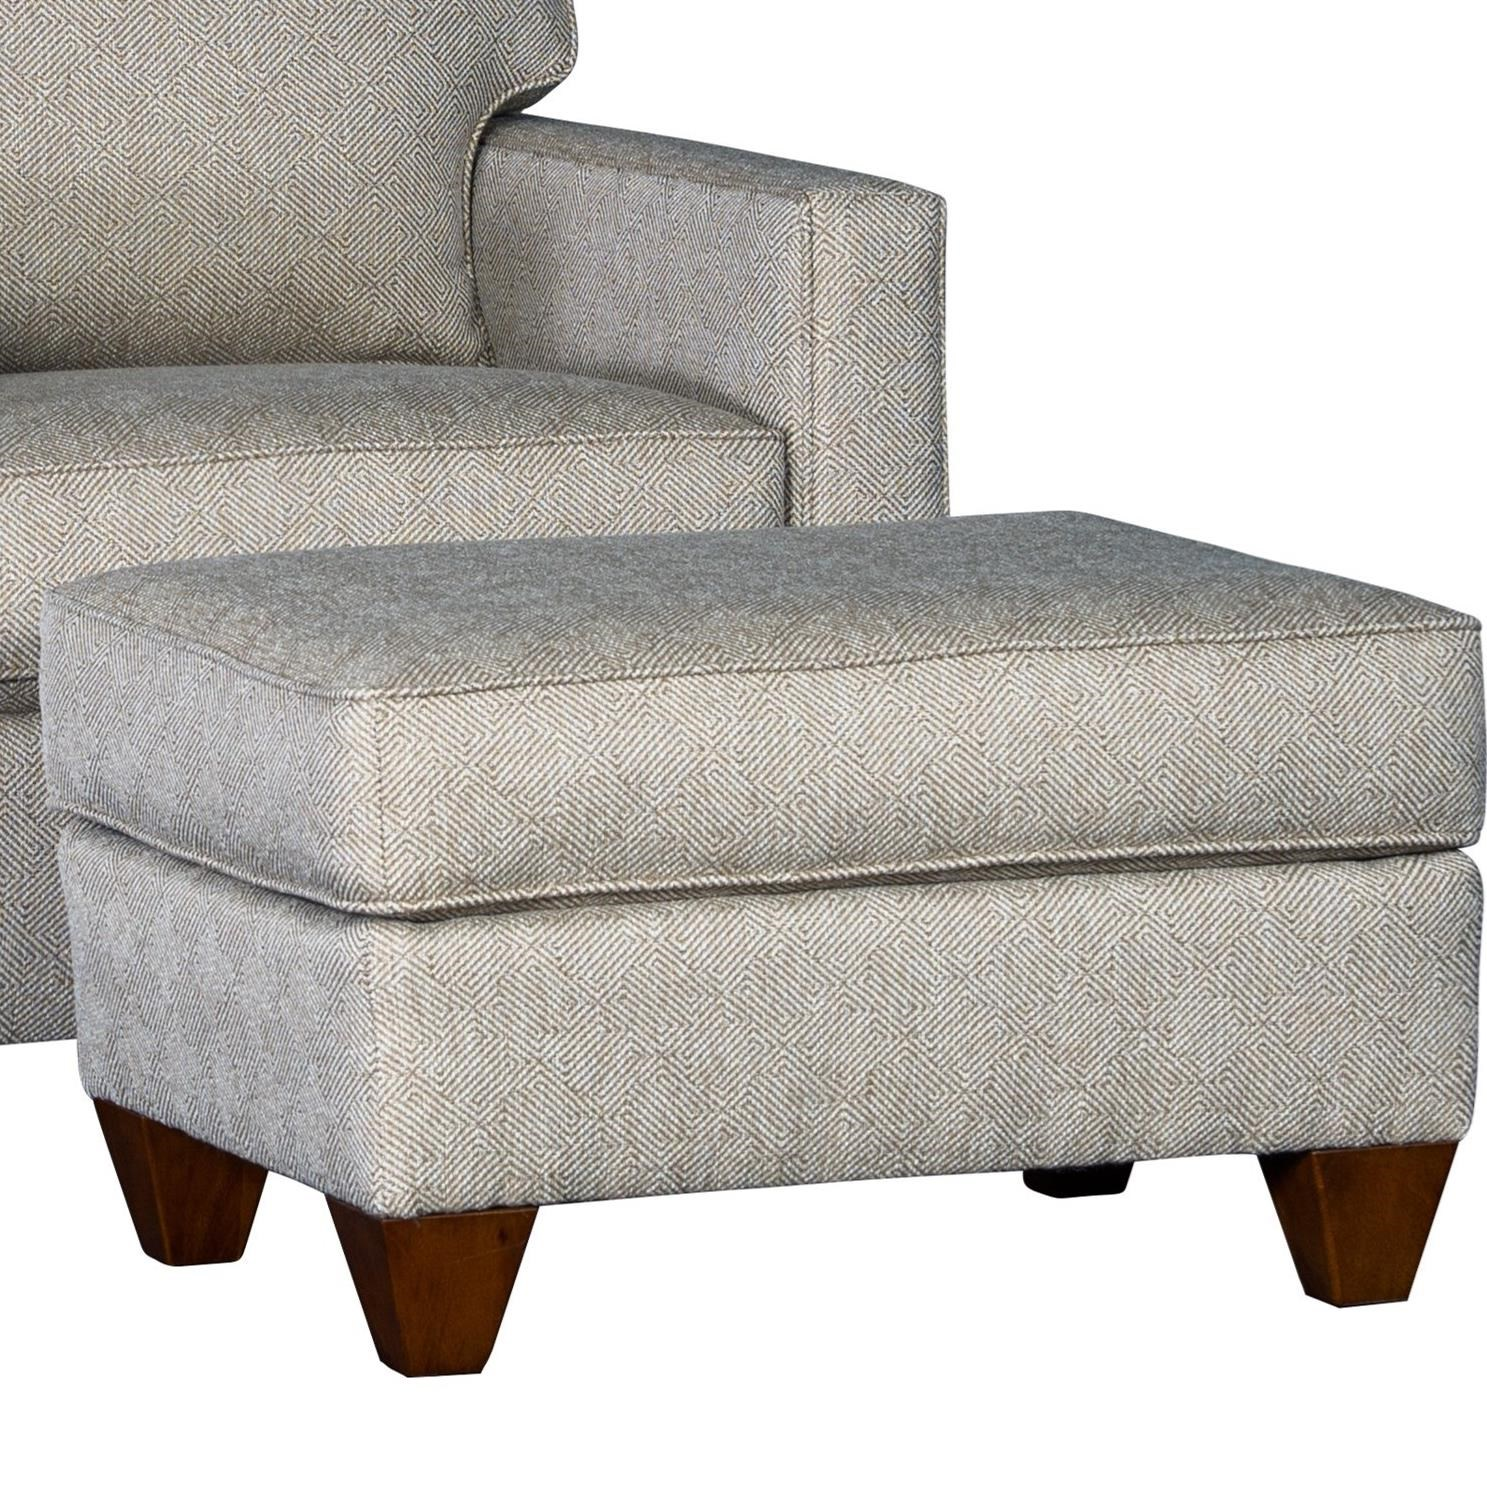 3830 Ottoman by Mayo at Story & Lee Furniture